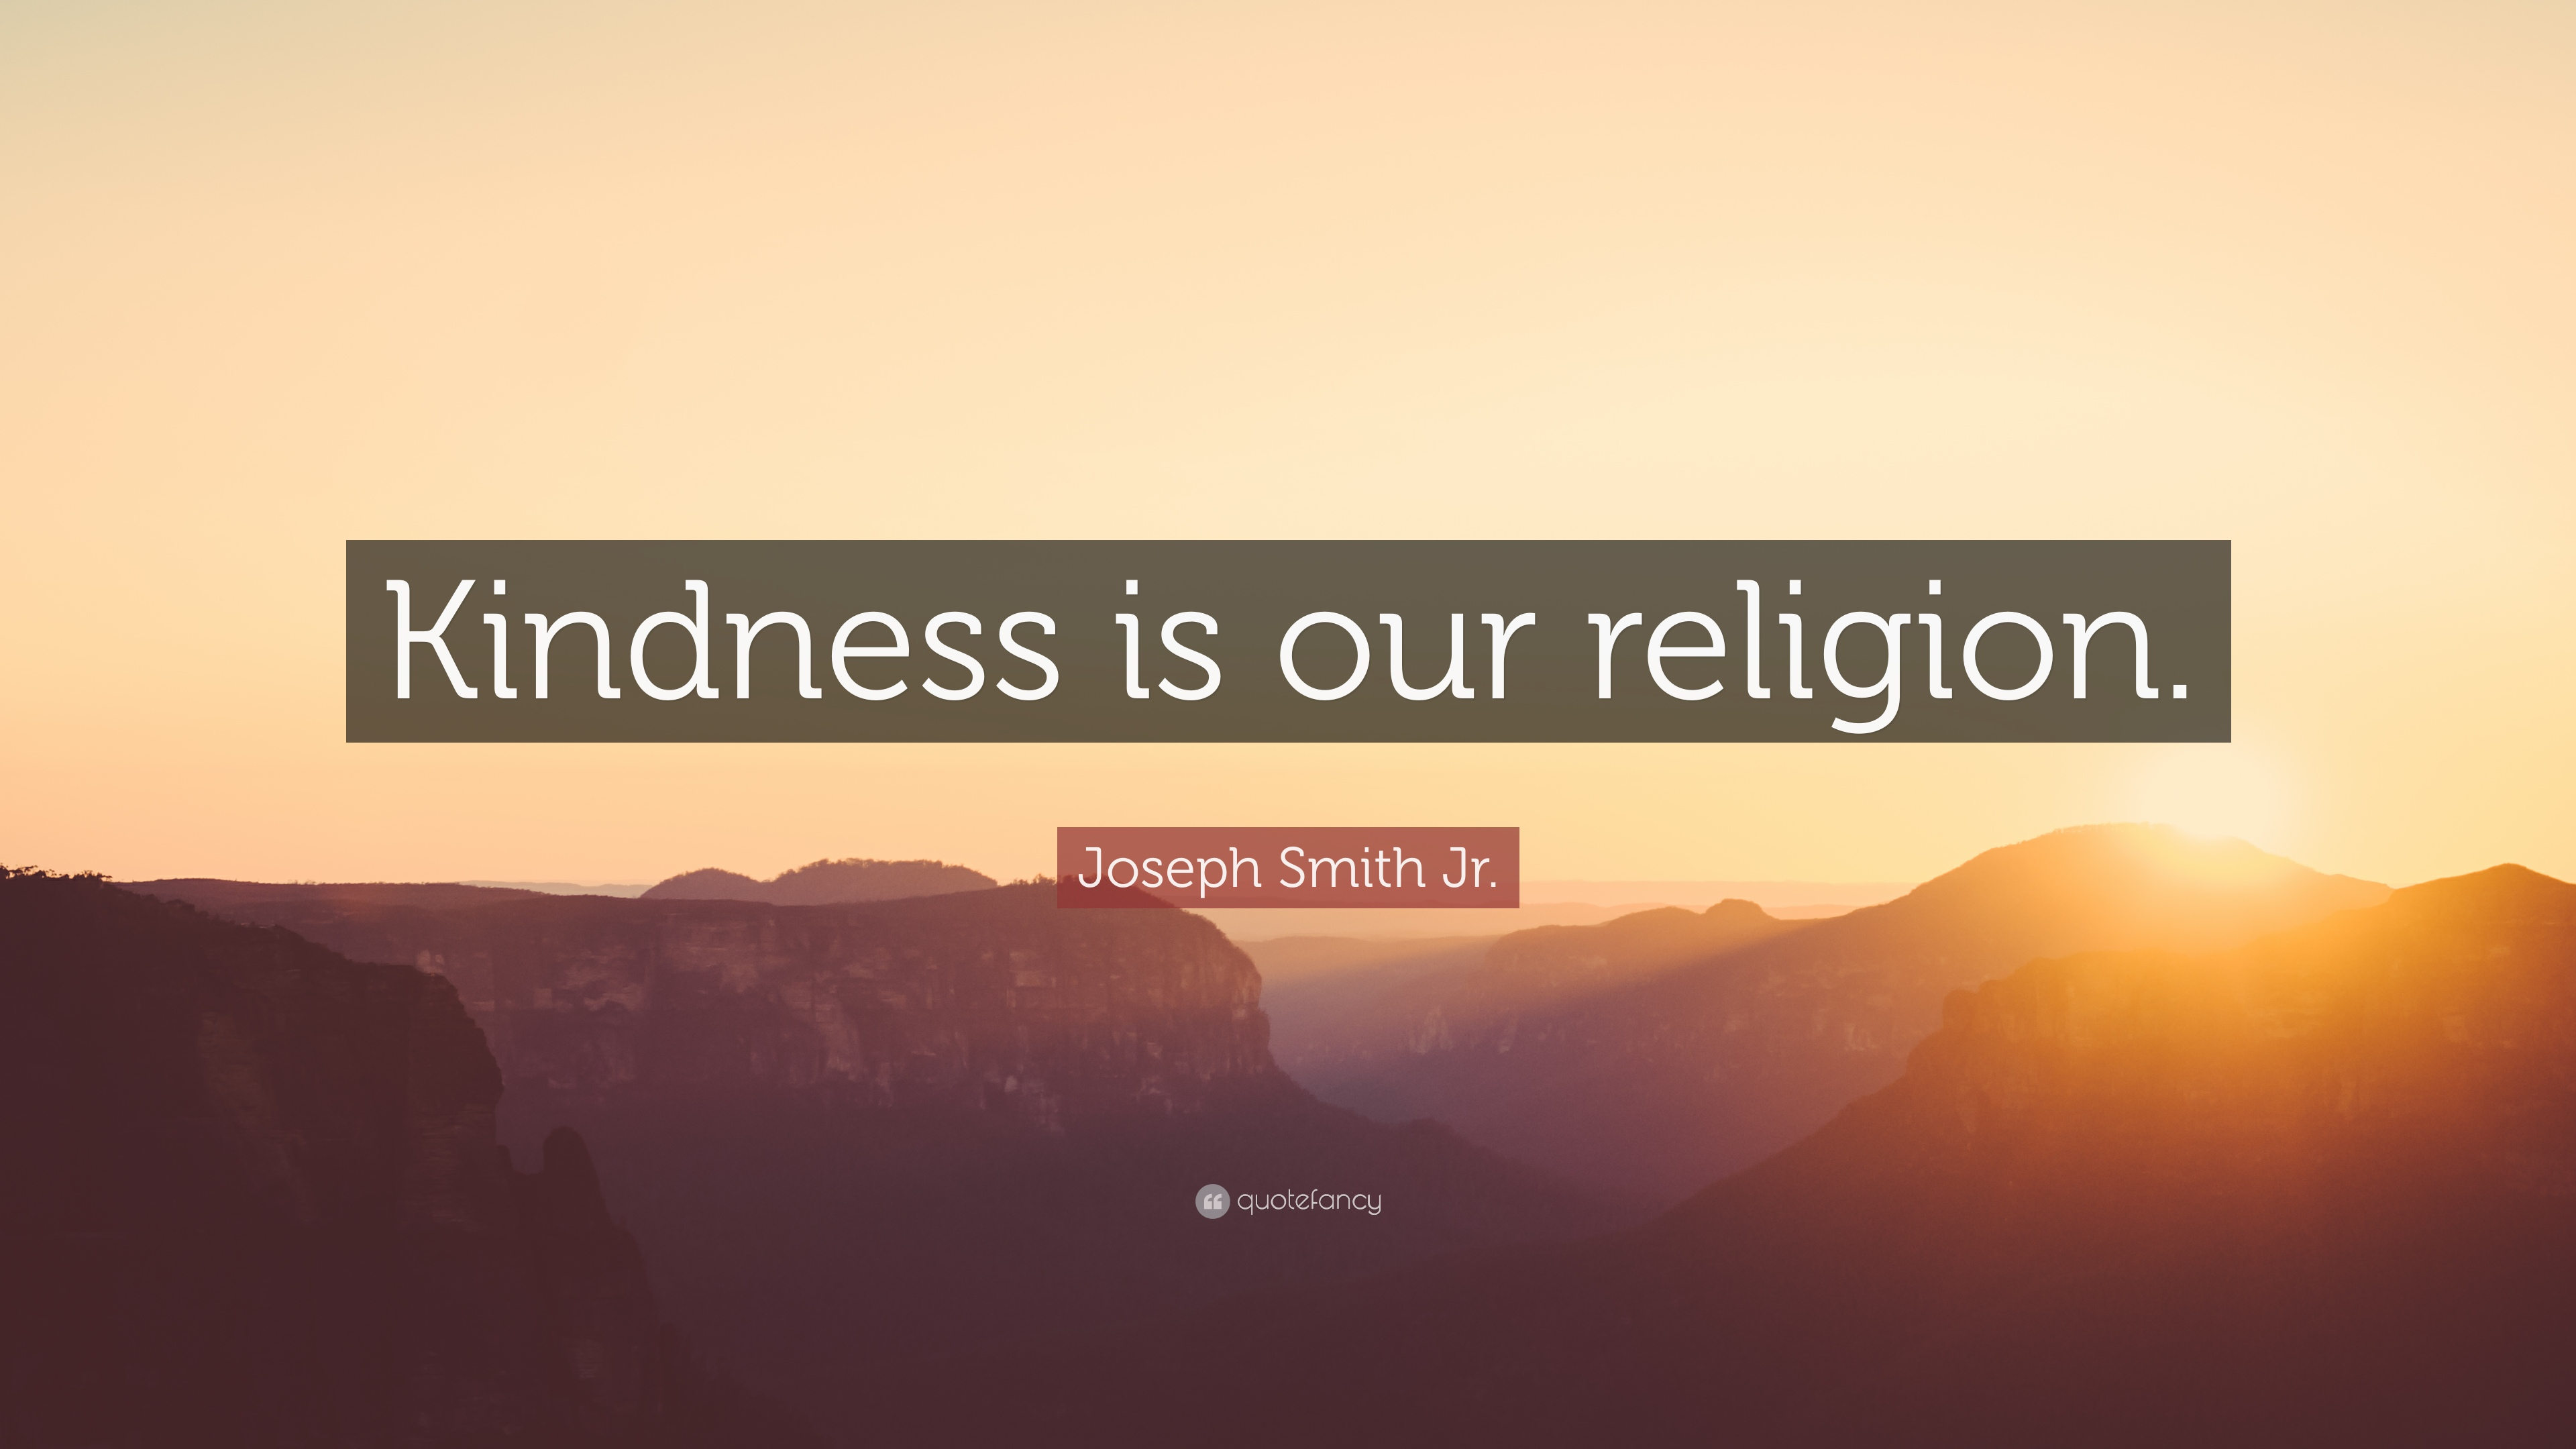 "Quote About Kindness Adorable Joseph Smith Jrquote ""Kindness Is Our Religion."" 9 Wallpapers"